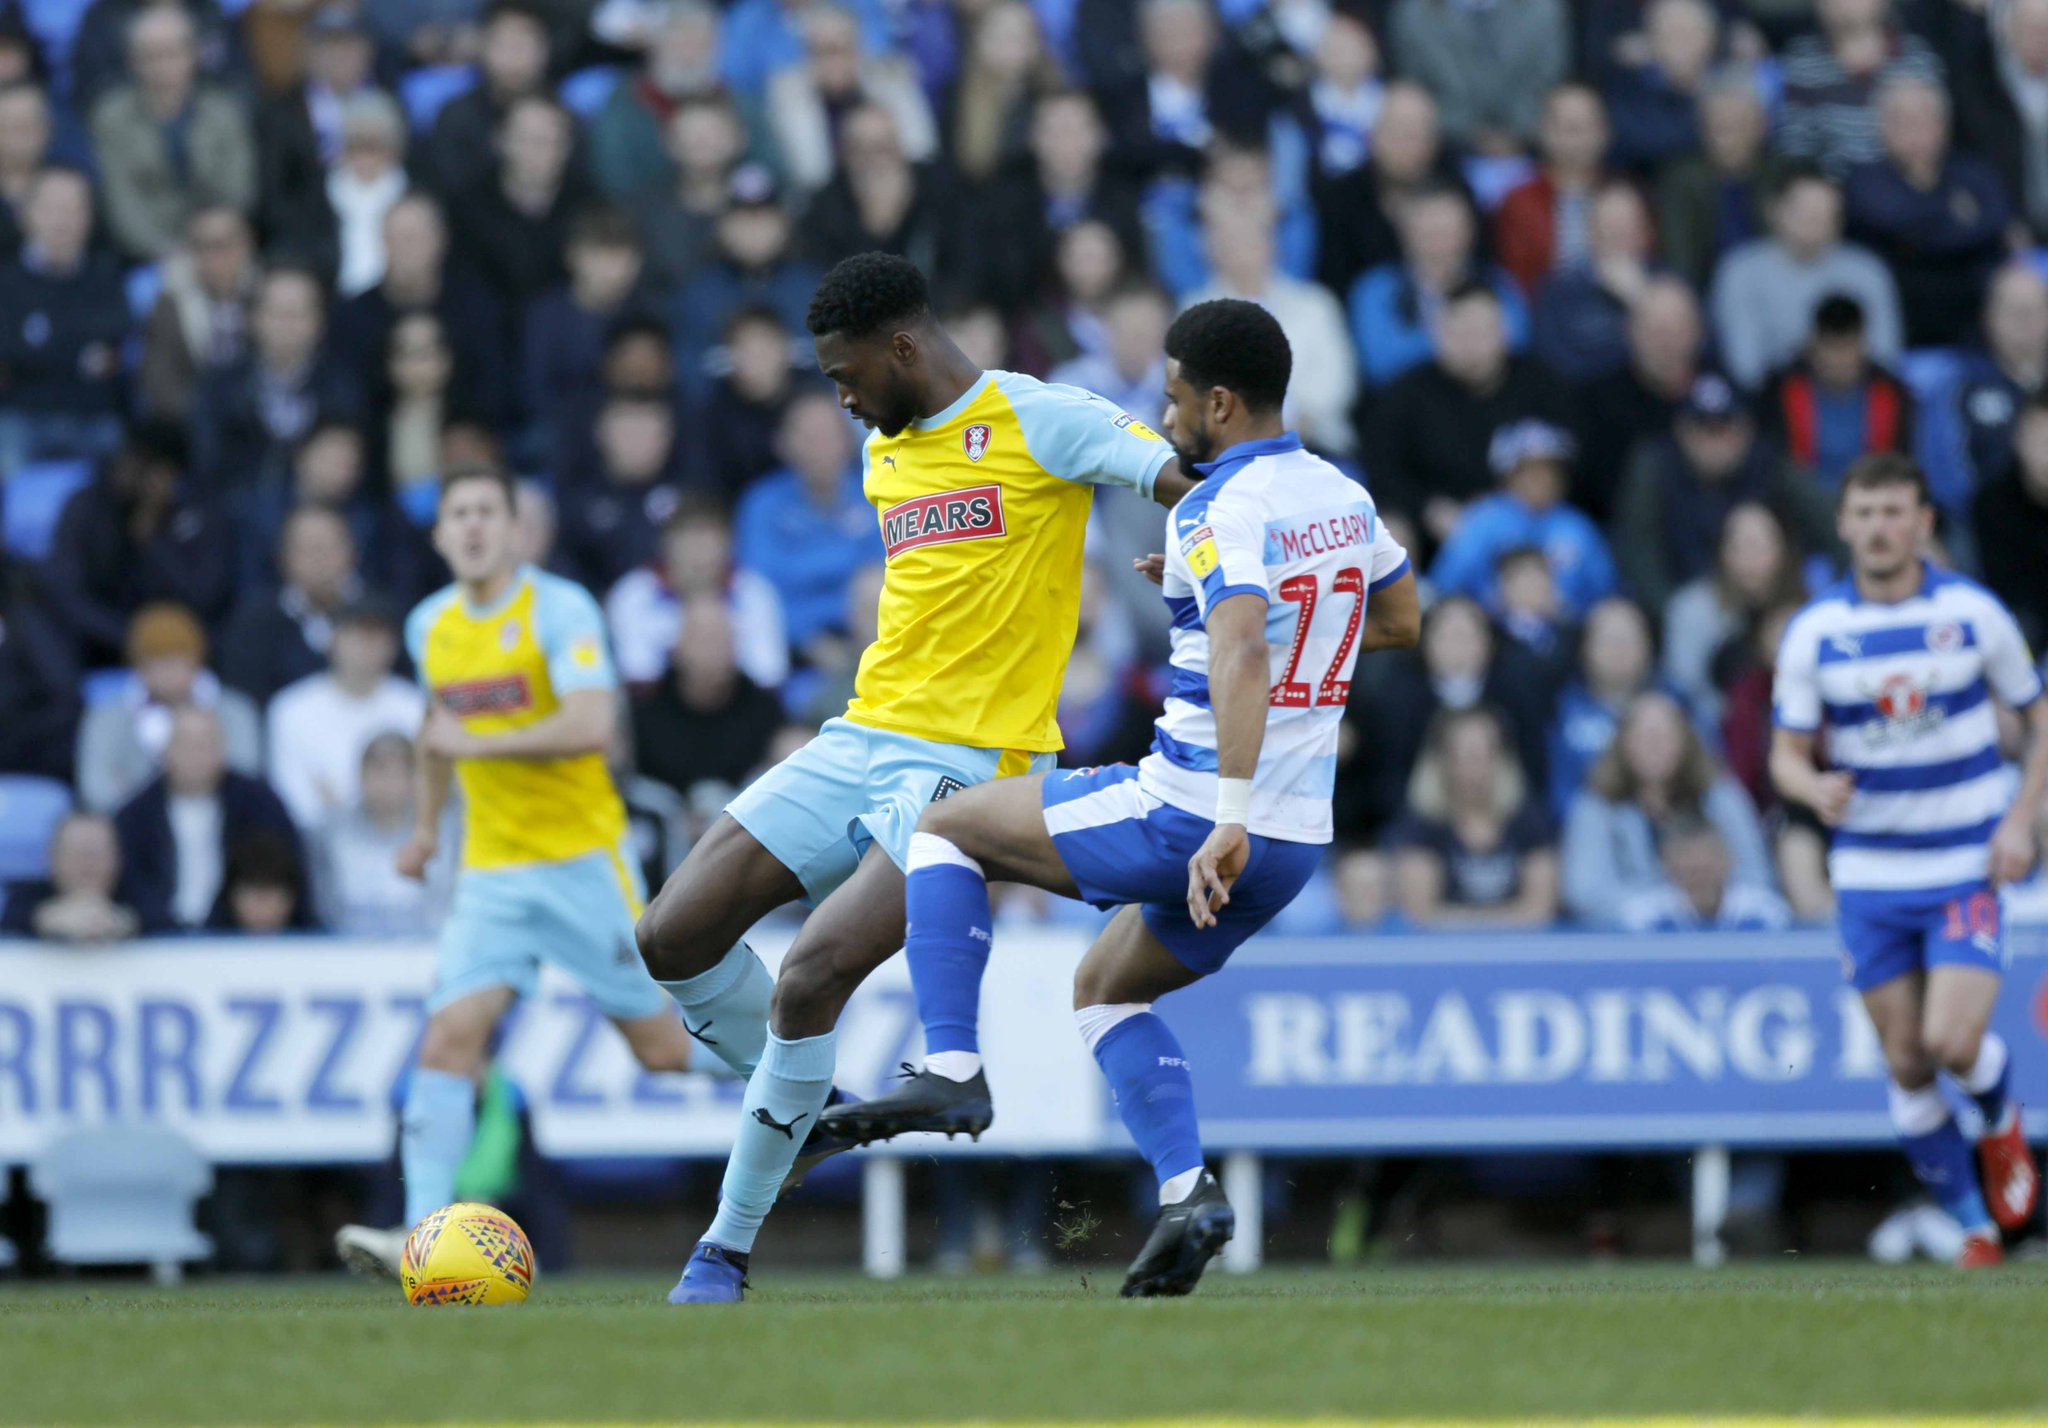 English Championship: Ajayi On Target For Rotherham, Mikel Stars in Boro Win Vs QPR